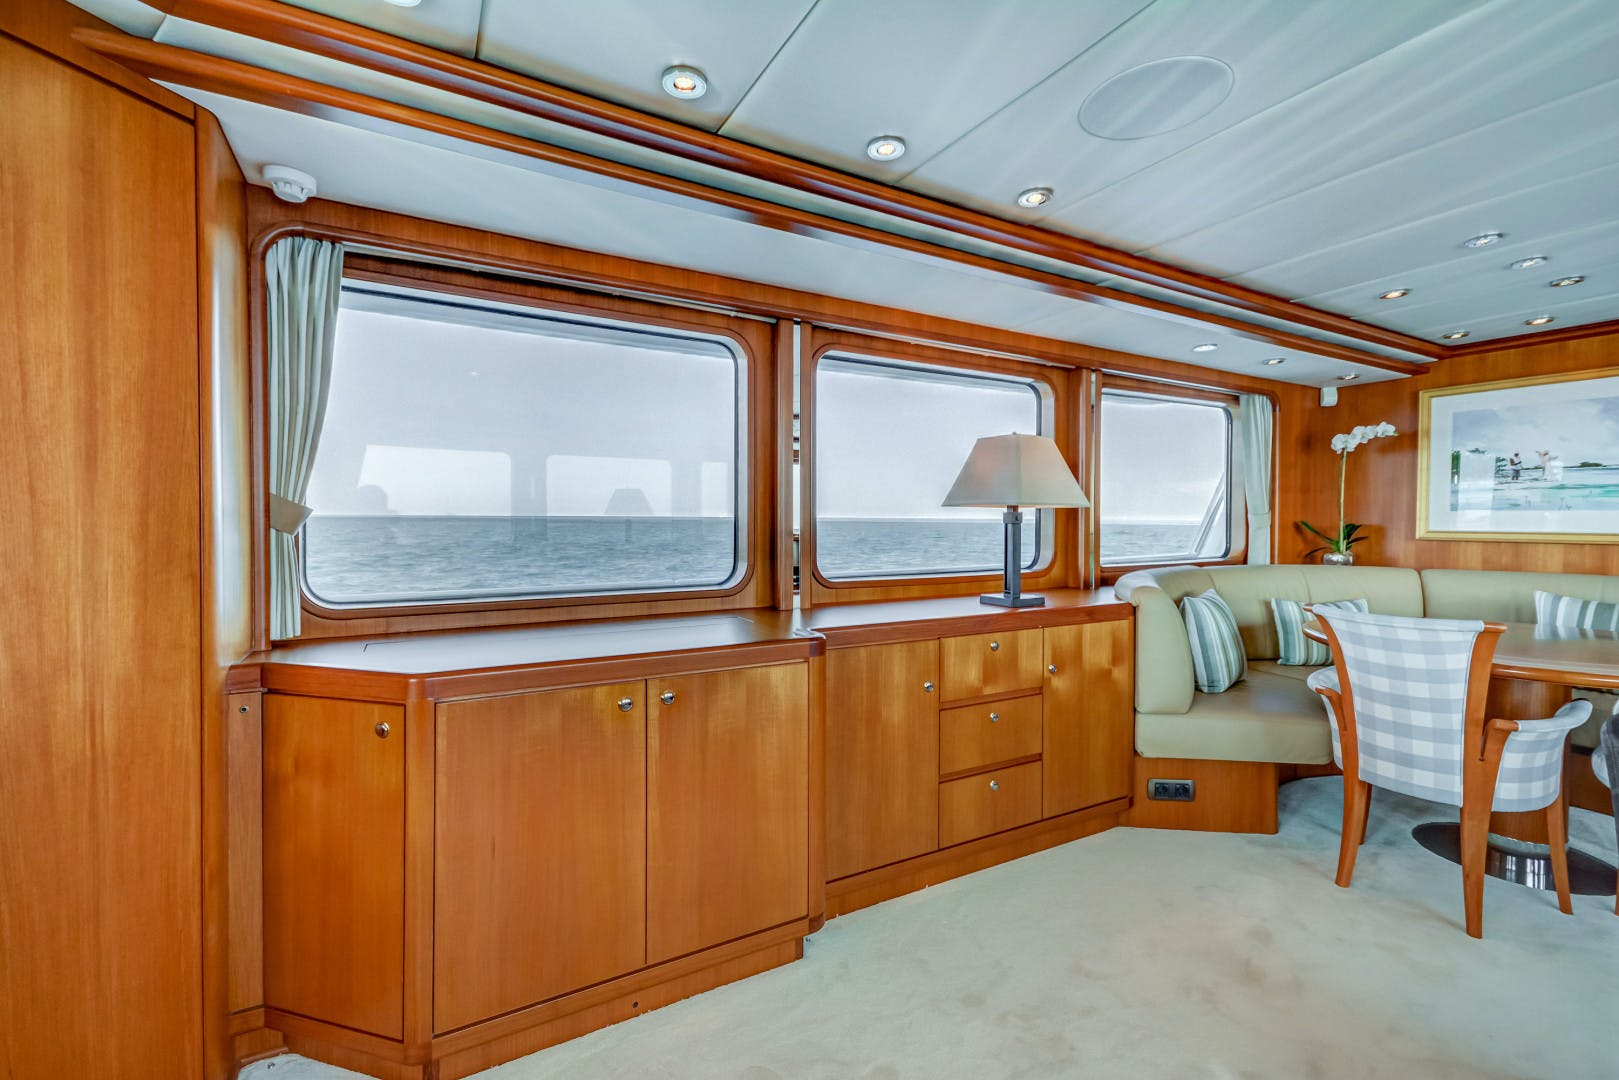 2002 Kuipers Woudsend 84' Raised Pilothouse LRC GUSTO | Picture 8 of 31